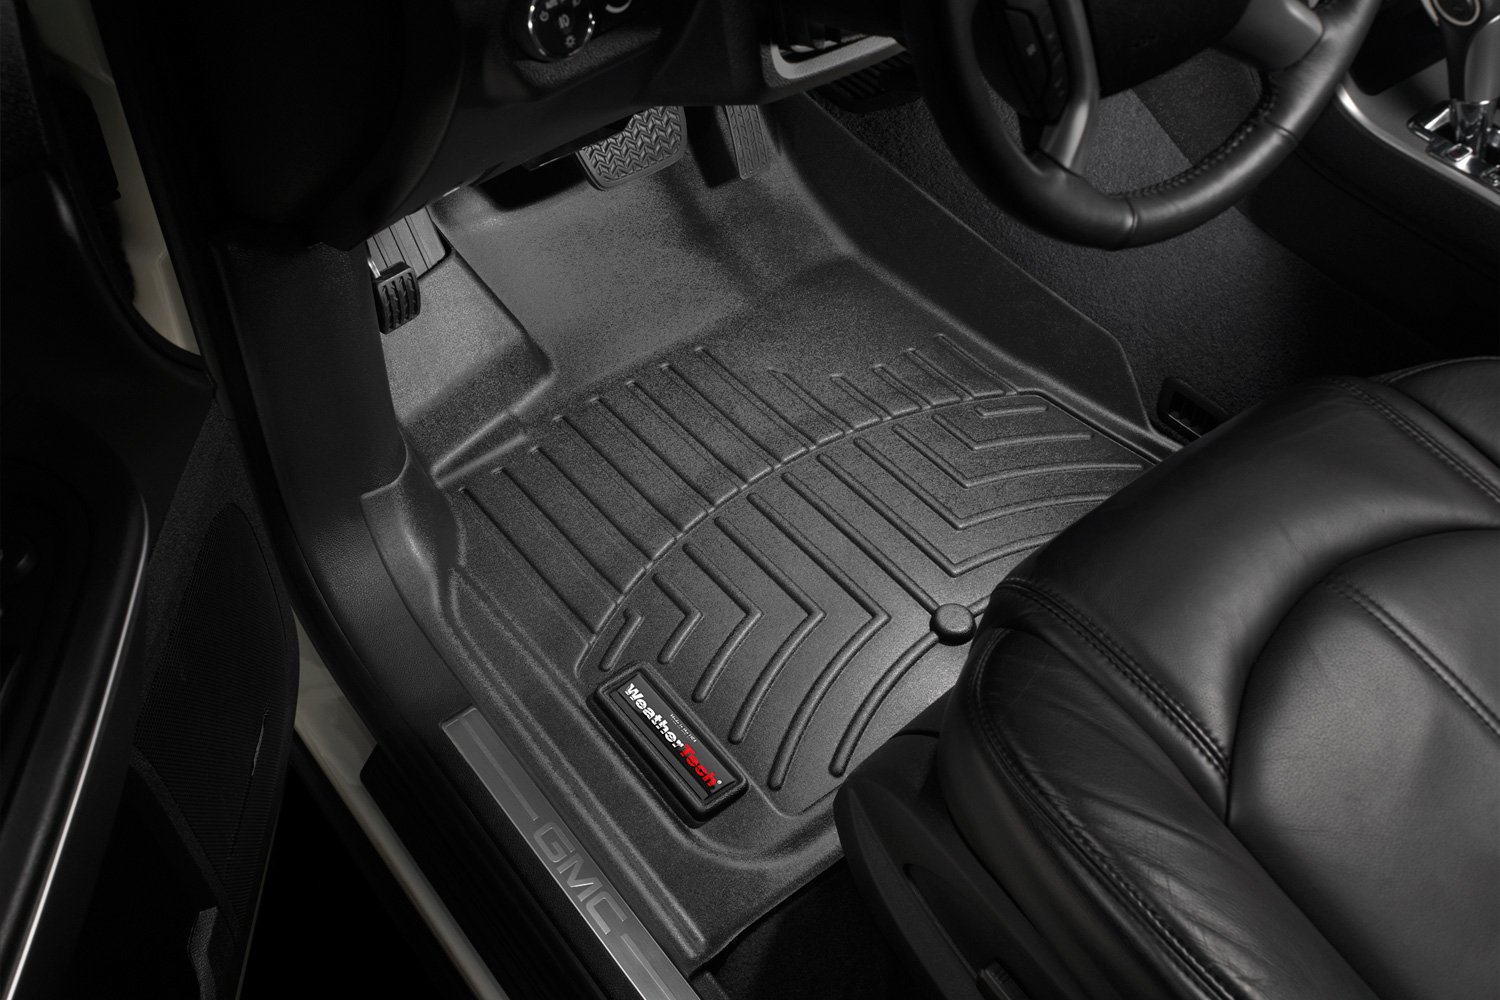 outback l floor fit liners measured laser dinosauriensinfo weathertech tech mats weather perfect floorliners subaru team